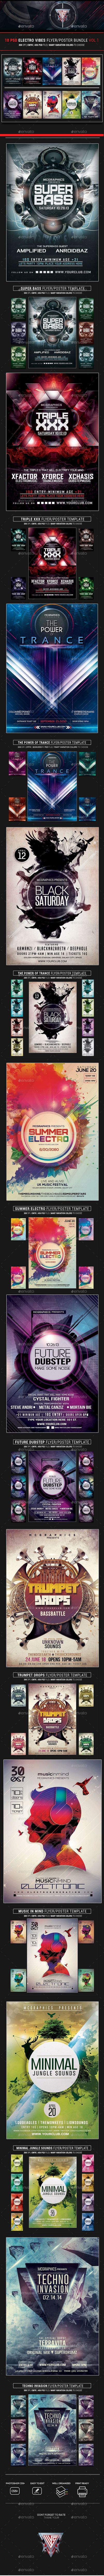 10 PSD #Electro #Vibes #Flyer/Poster Template Bundle Vol. 1 - Flyers Print Templates